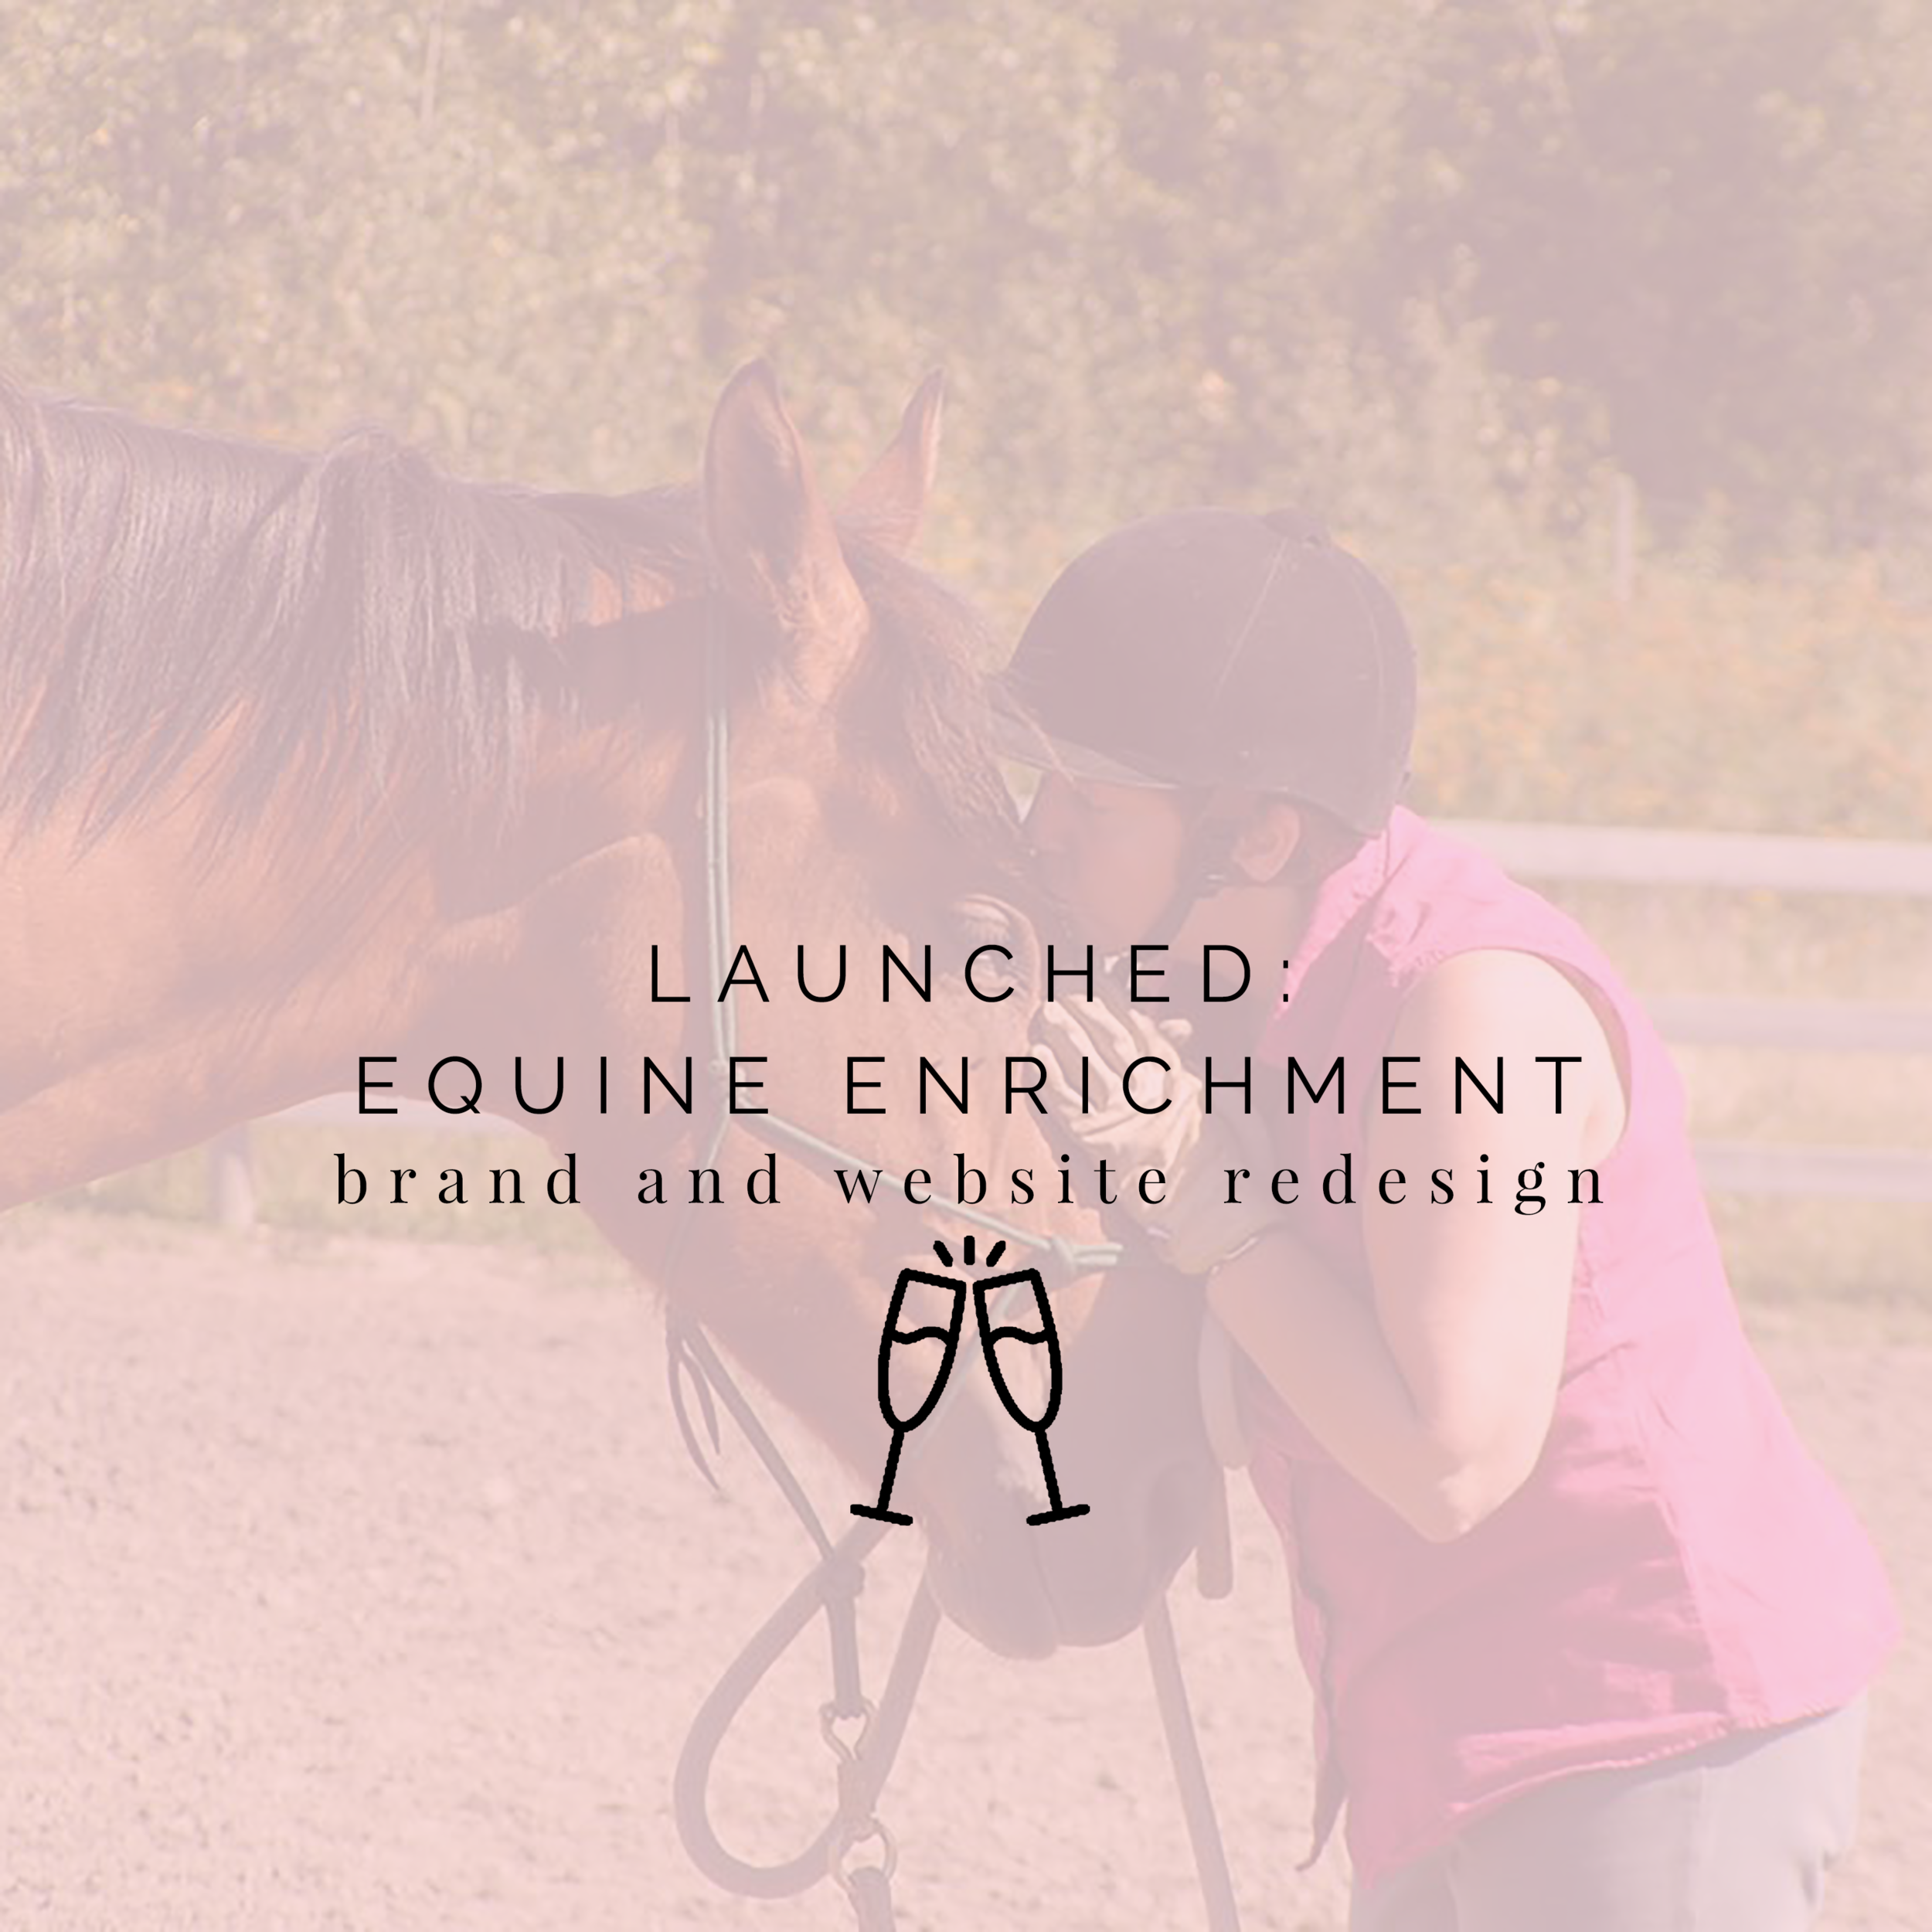 Launched Equine Enrichment.png